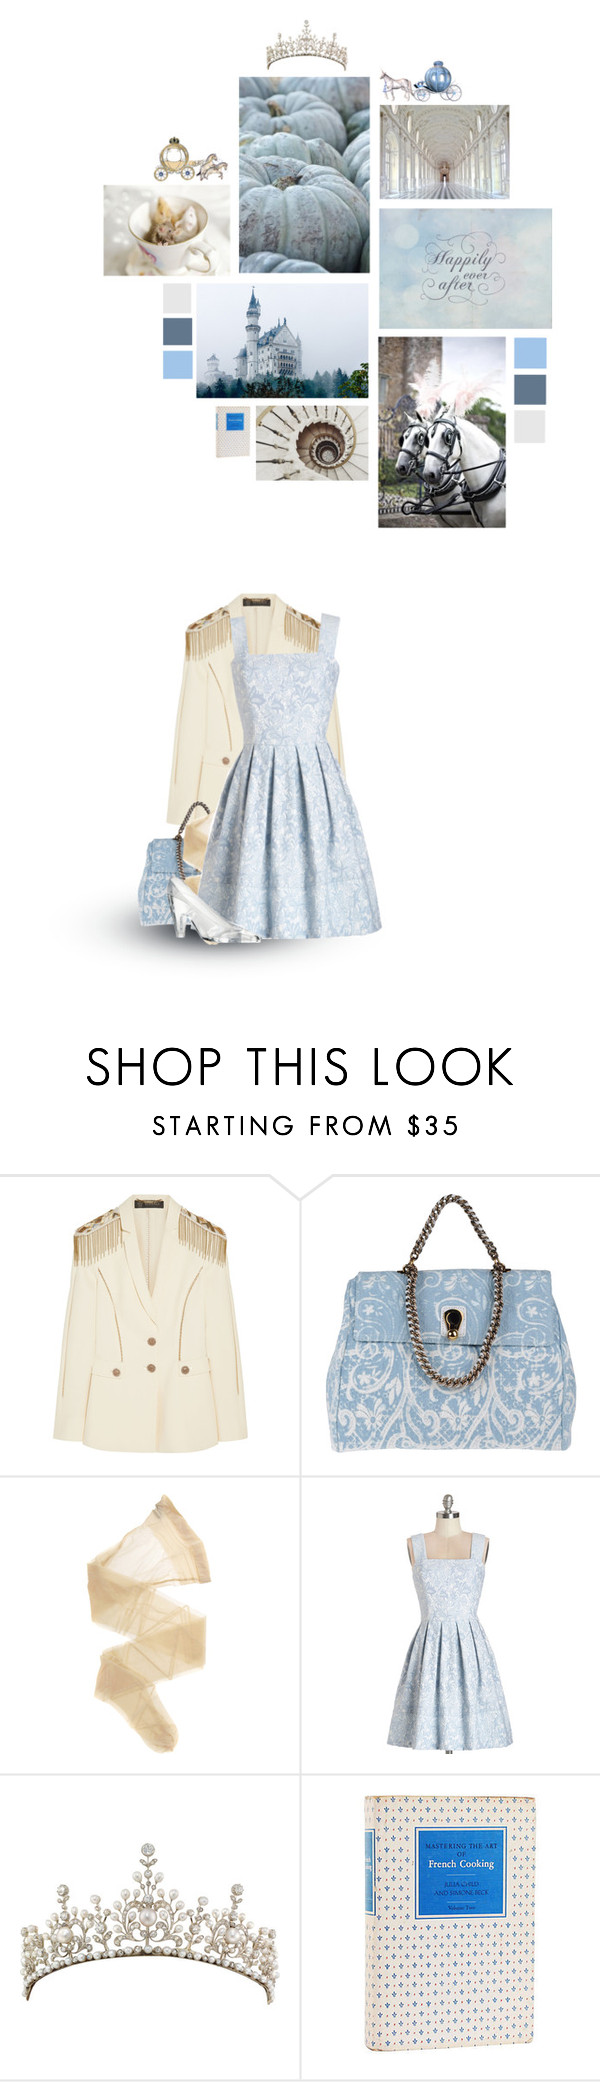 """""""Cinderella"""" by siriuslyoddsome ❤ liked on Polyvore featuring Versace, Ermanno Scervino, Wolford, Antonio Marras, Once Upon a Time, cinderella and fairytale"""